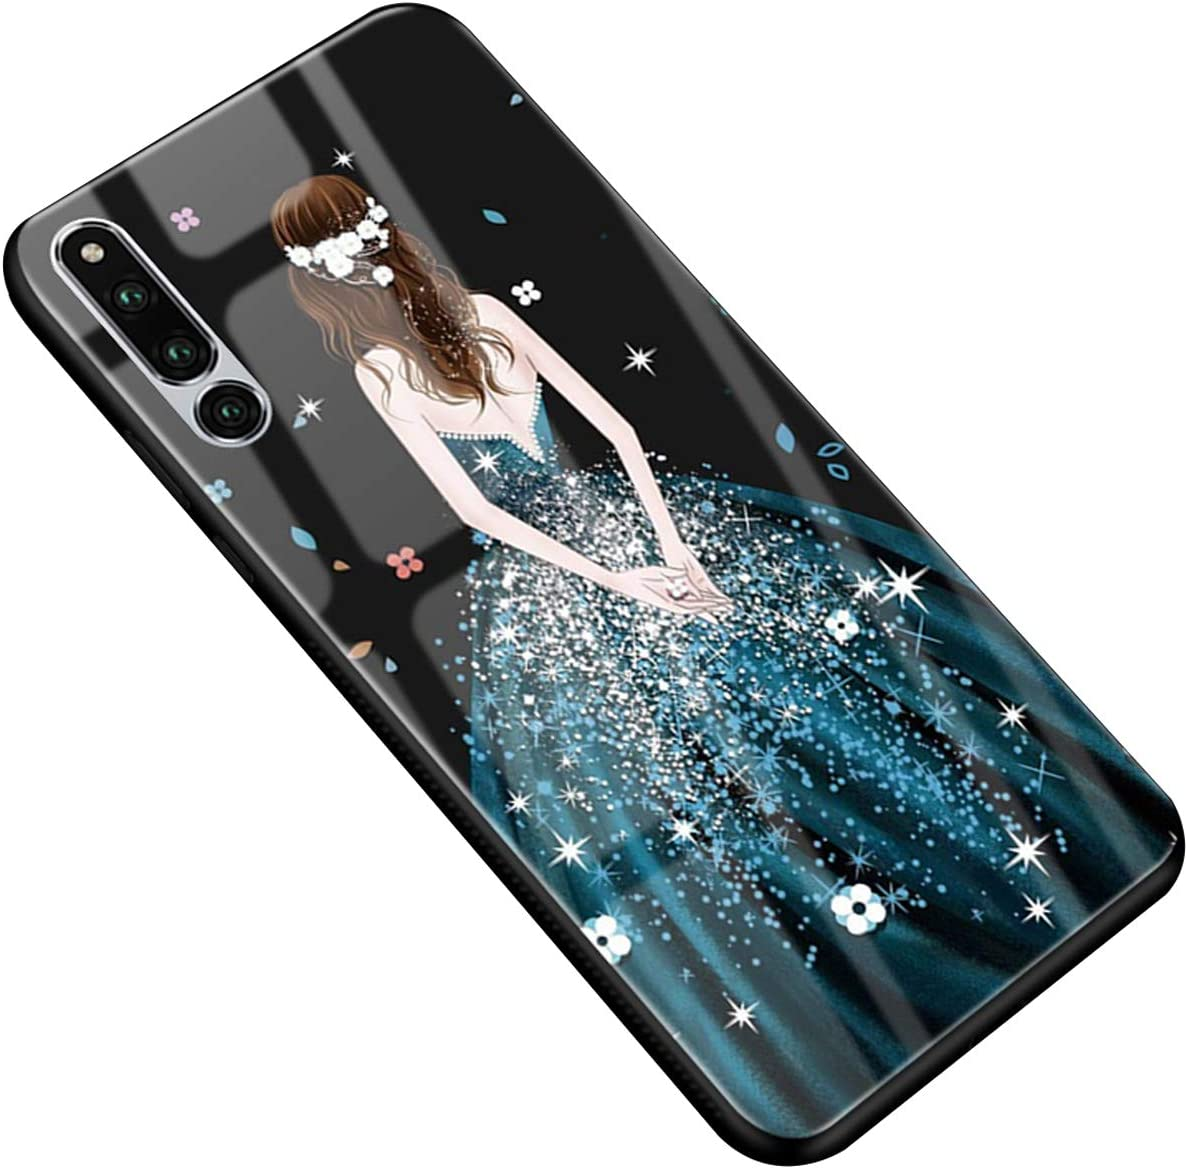 SDB Huawei Honor Magic 2 Caja de Cristal Templado Vestido de Novia ...